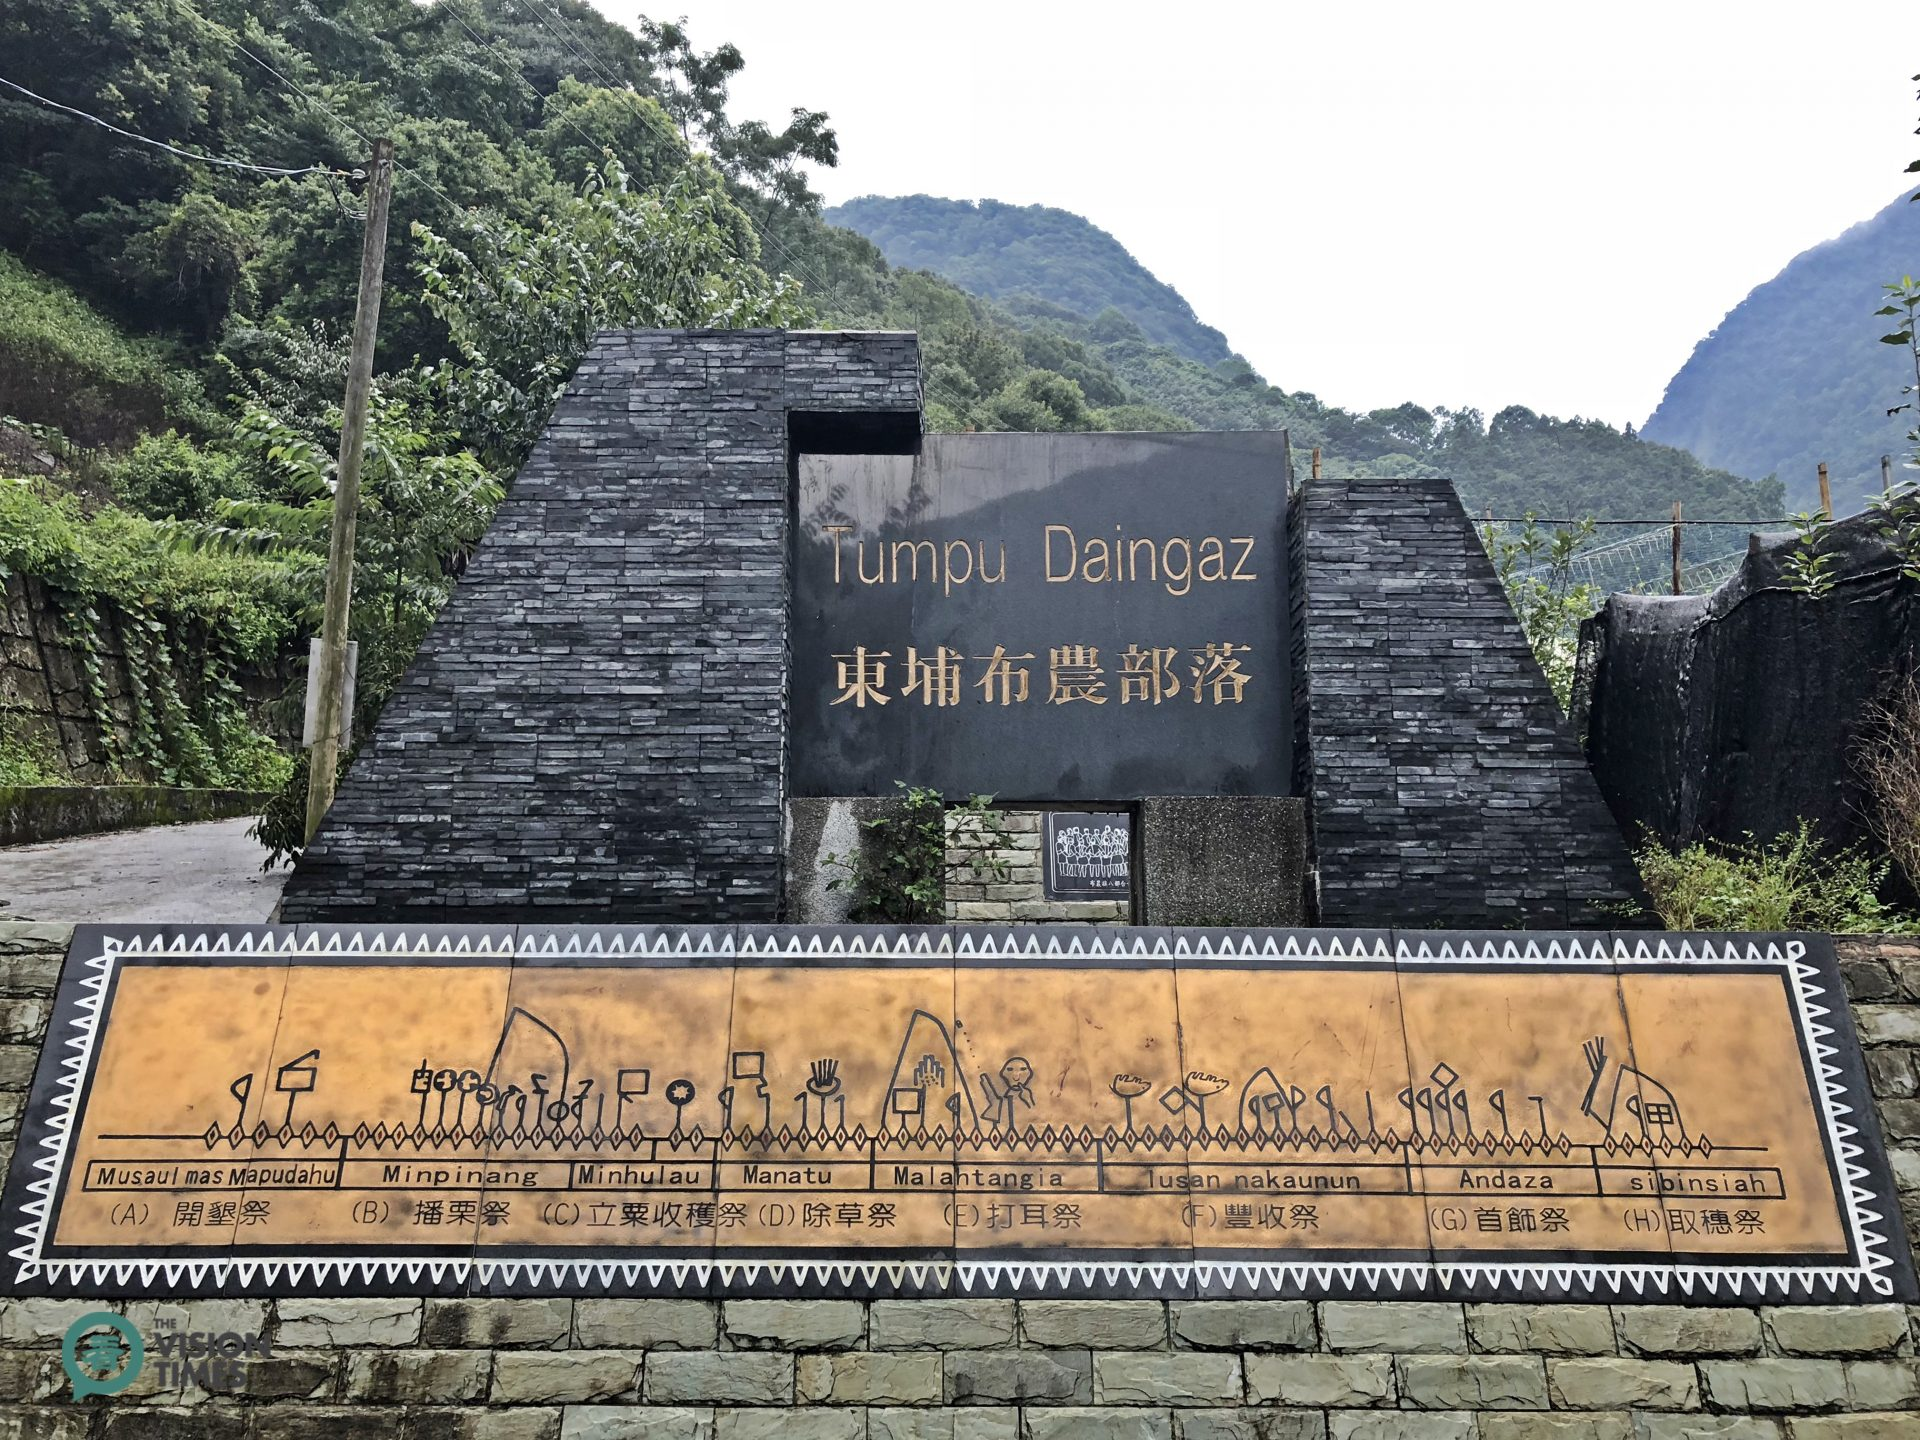 Dongpu is a famous Bunun tribe with superb hot springs and mountain sceneries. (Image: Julia Fu / Vision Times)